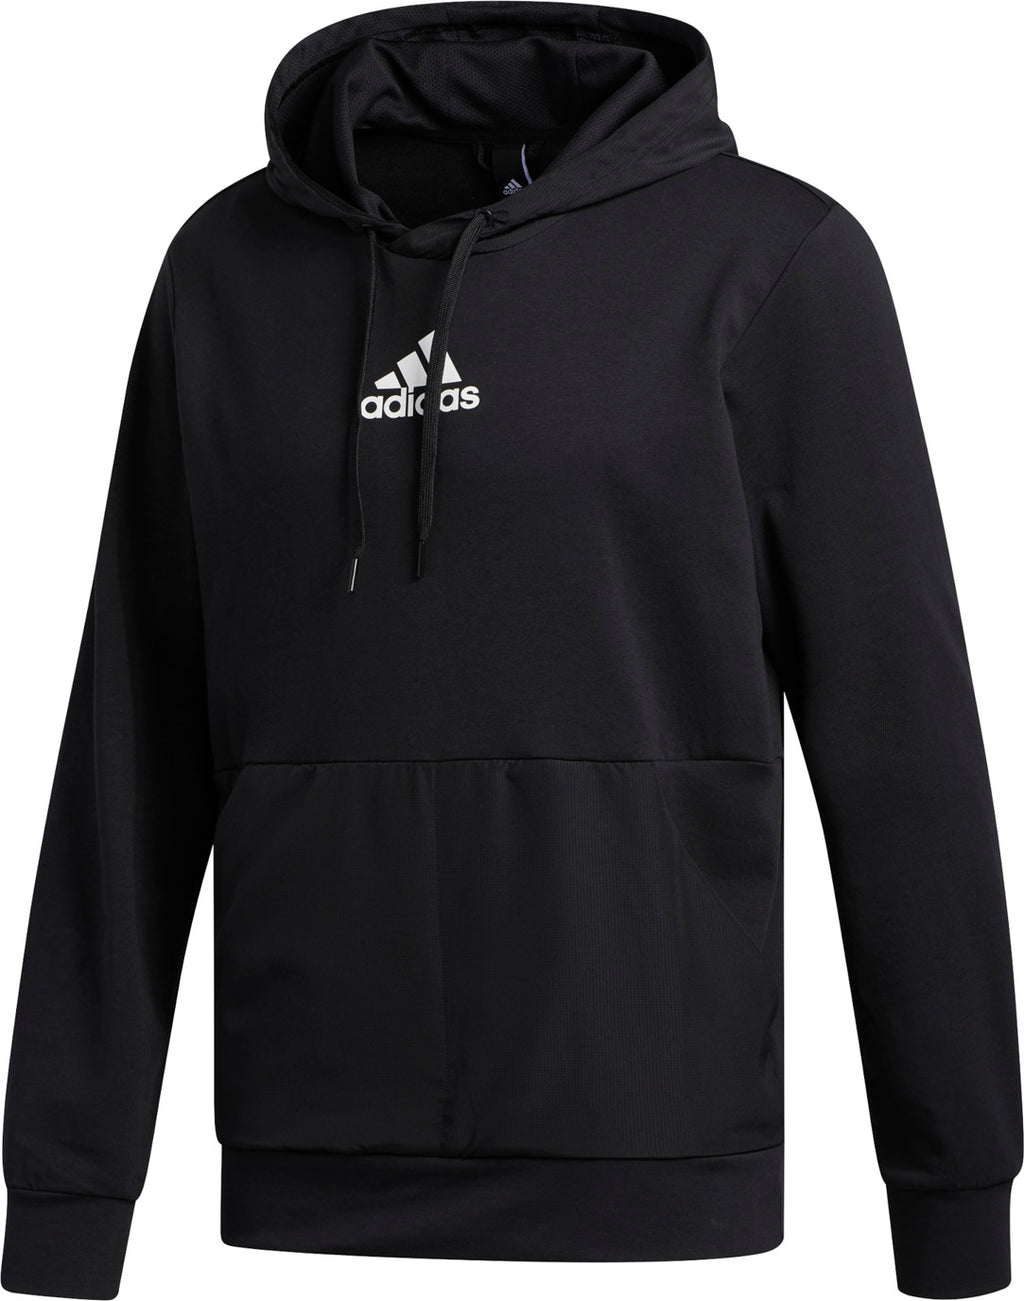 Adidas Sweat shirt à capuche Game and Go Homme